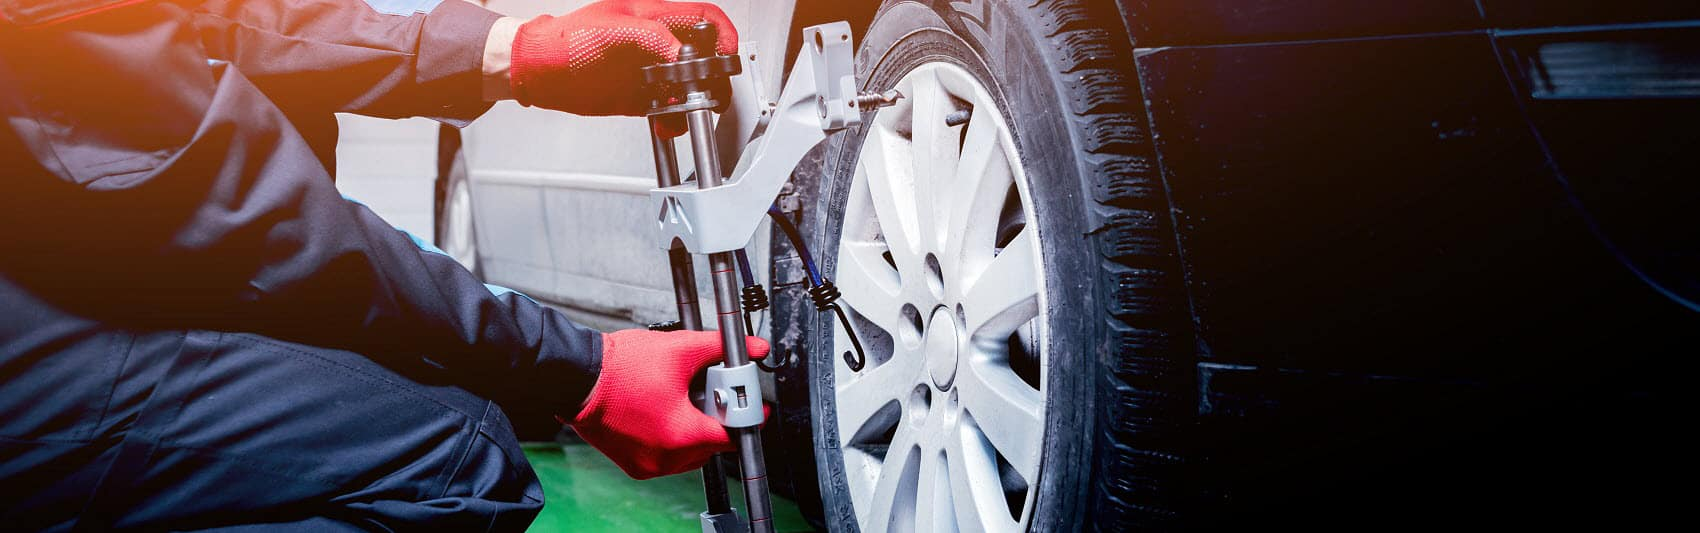 Vehicle Wheel Alignment near Edison NJ